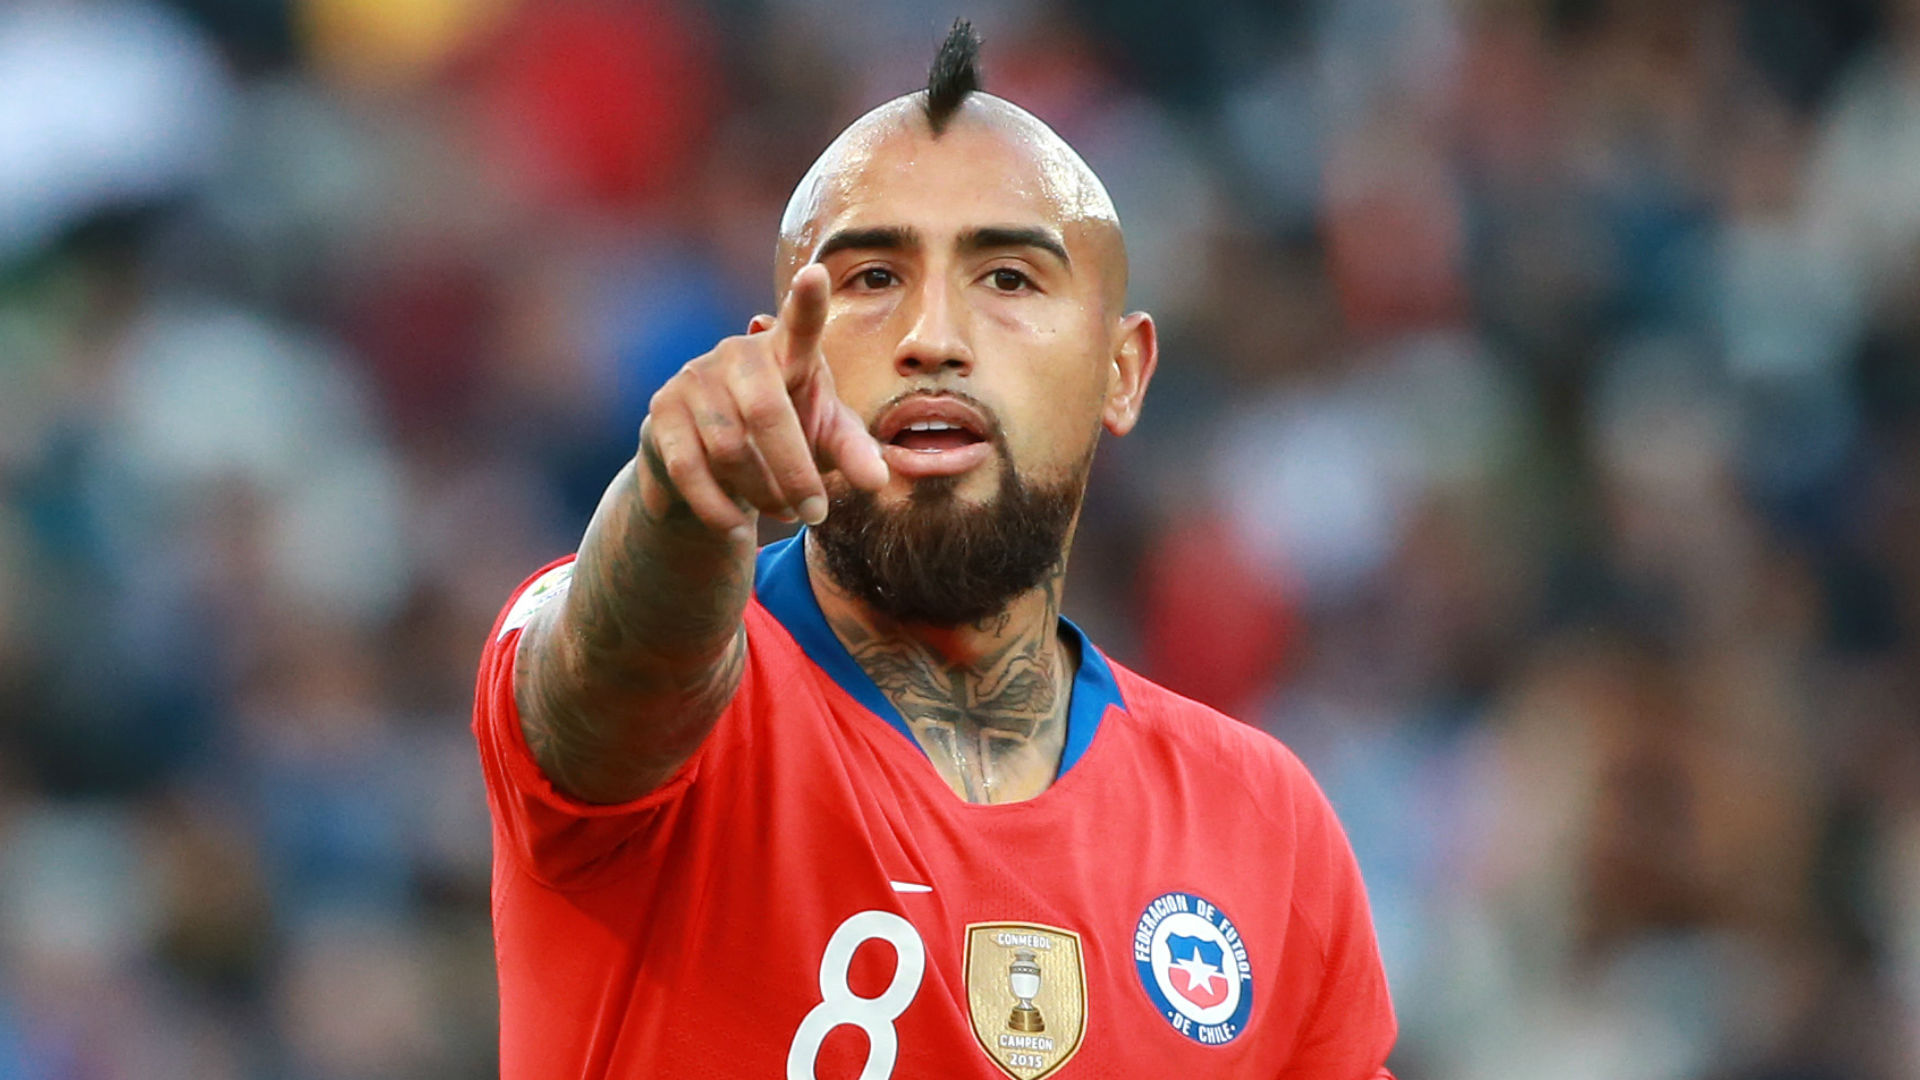 Vidal sees room for improvement after Chile win